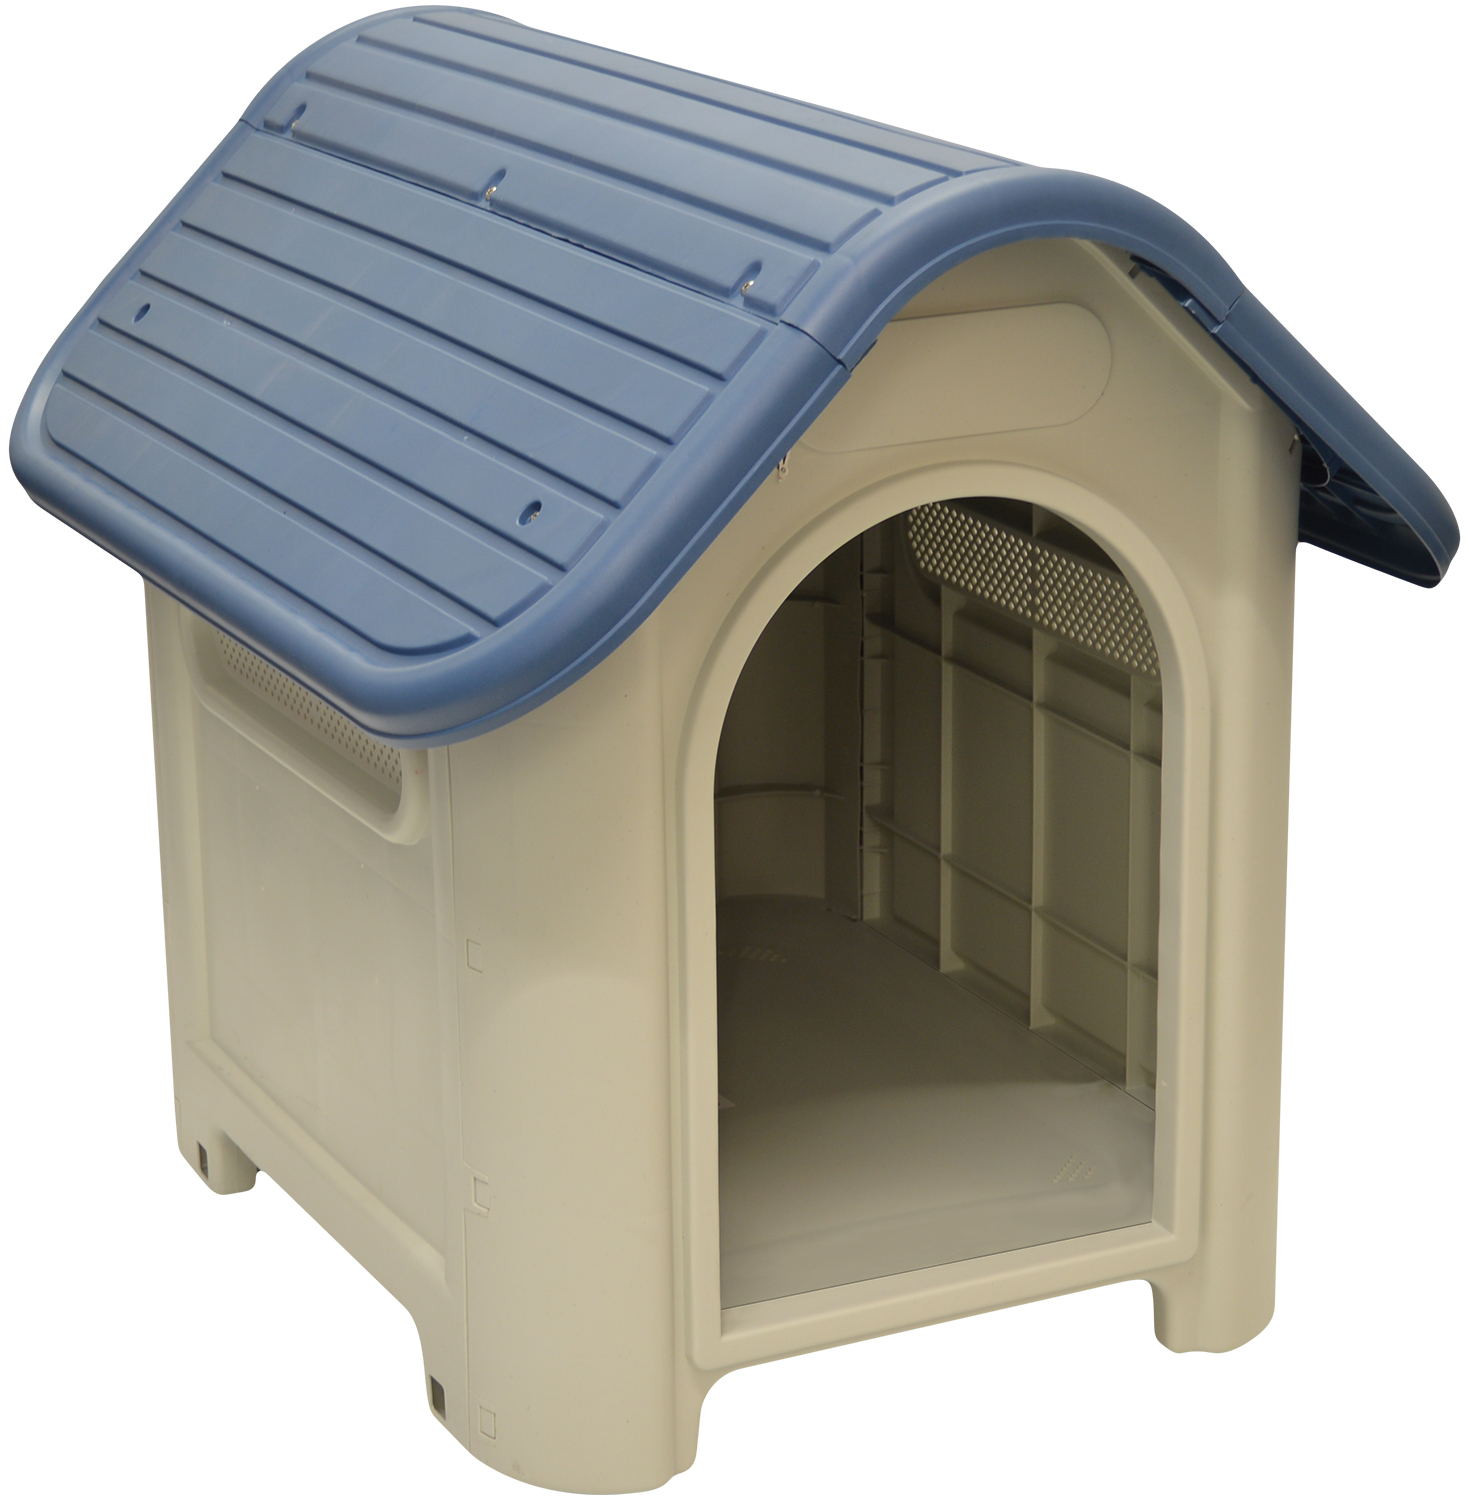 woodside plastic dog puppy kennel indoor outdoor pet. Black Bedroom Furniture Sets. Home Design Ideas